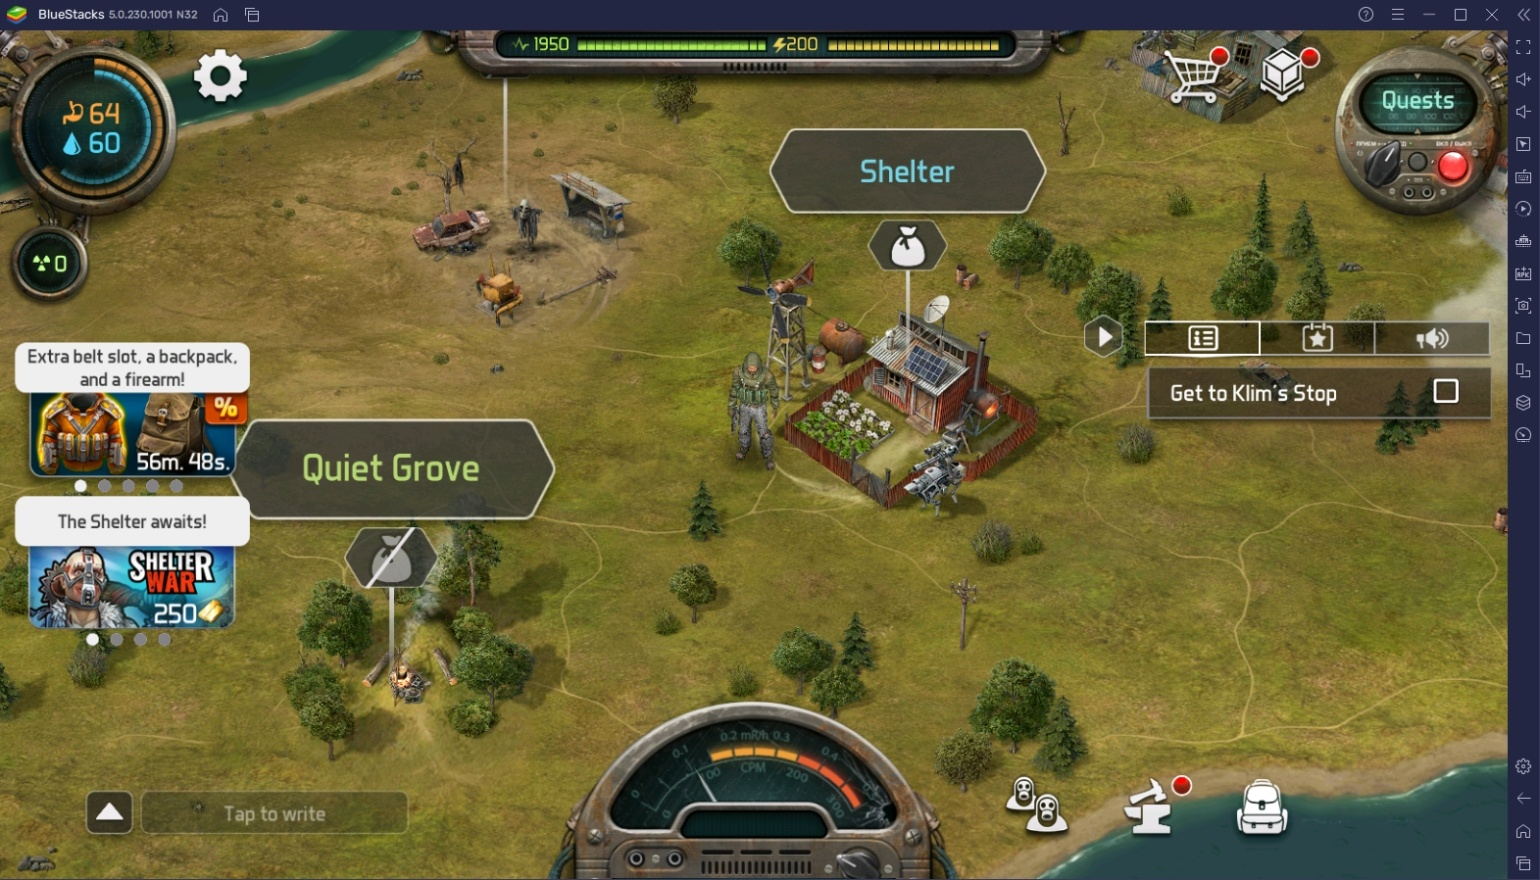 BlueStacks Beginner's Guide to Playing Dawn of Zombies